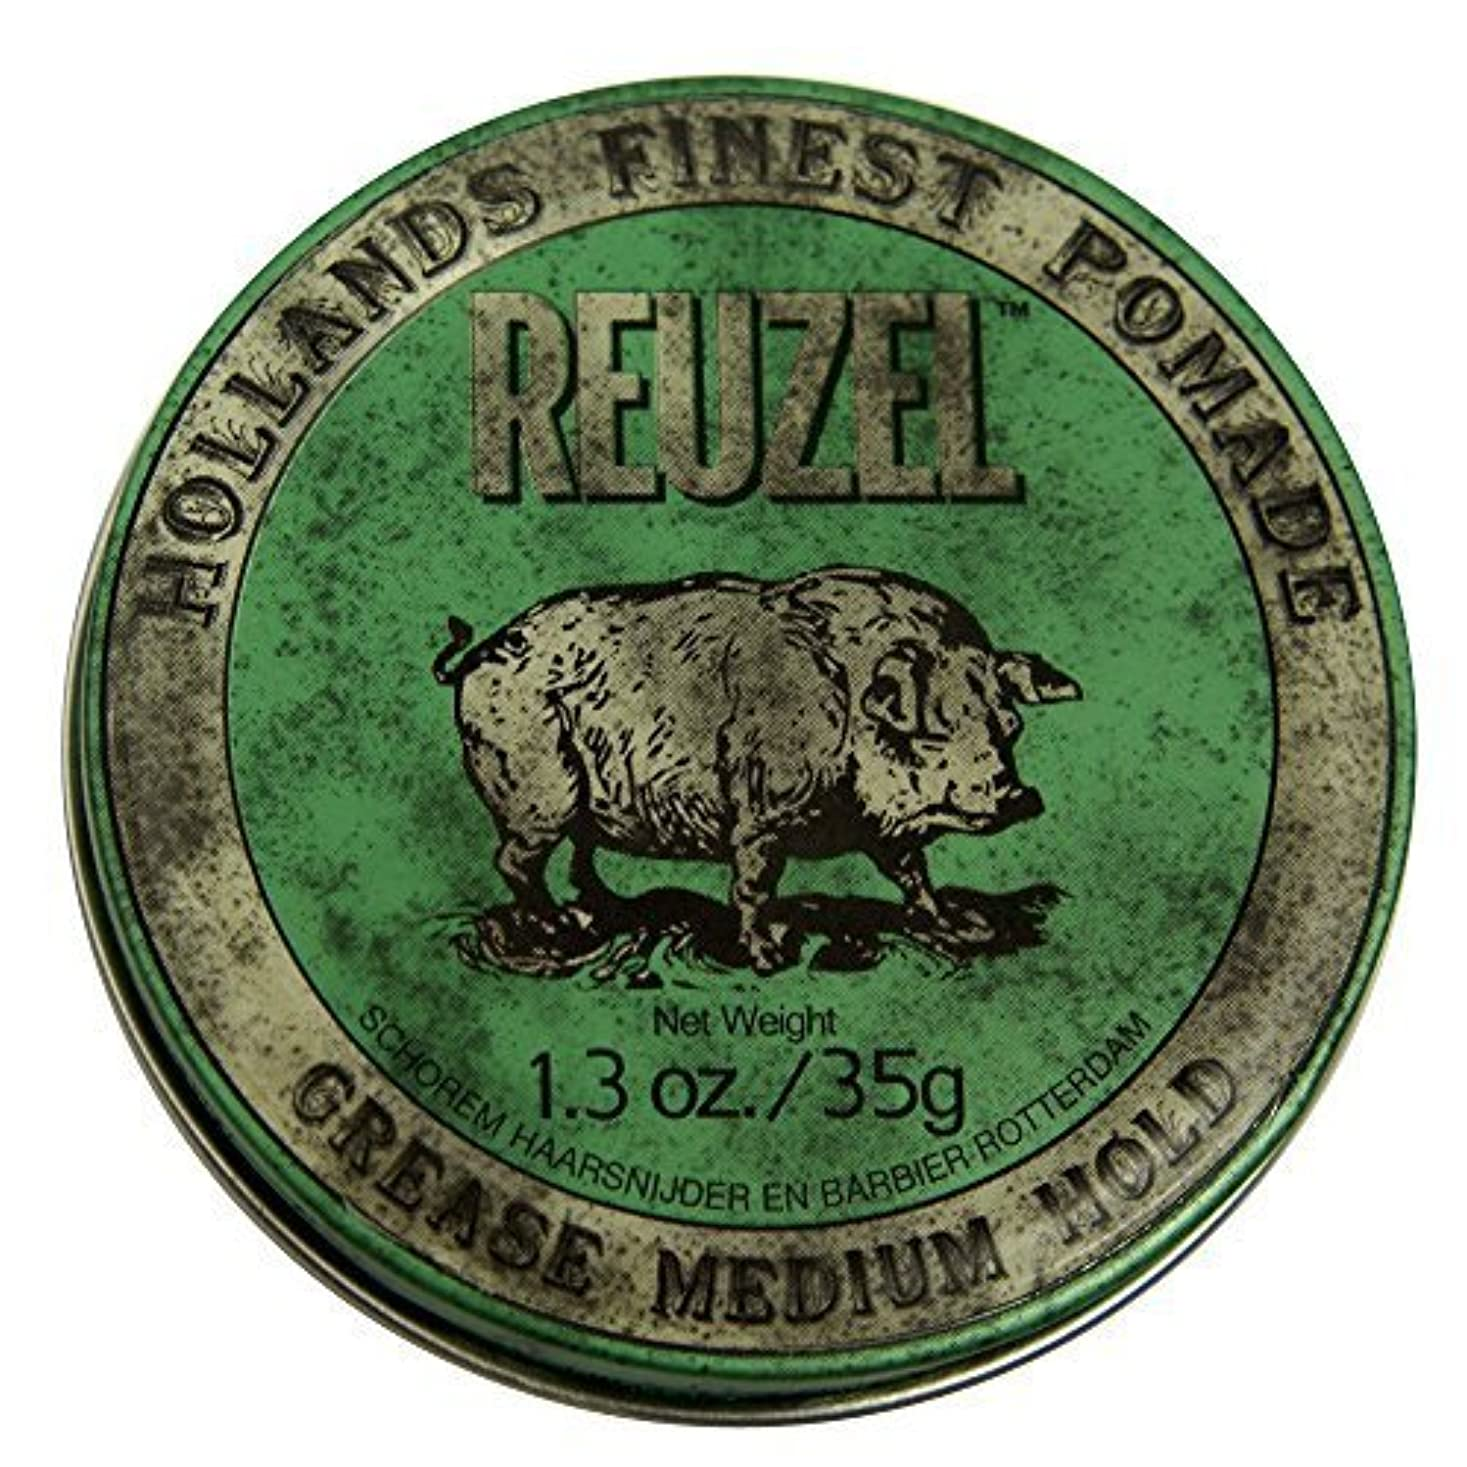 平らにする近似定期的by Reuzel Reuzel Green Grease Medium Hold Hair Styling Pomade Piglet 1.3oz (35g) Wax/Gel [並行輸入品]